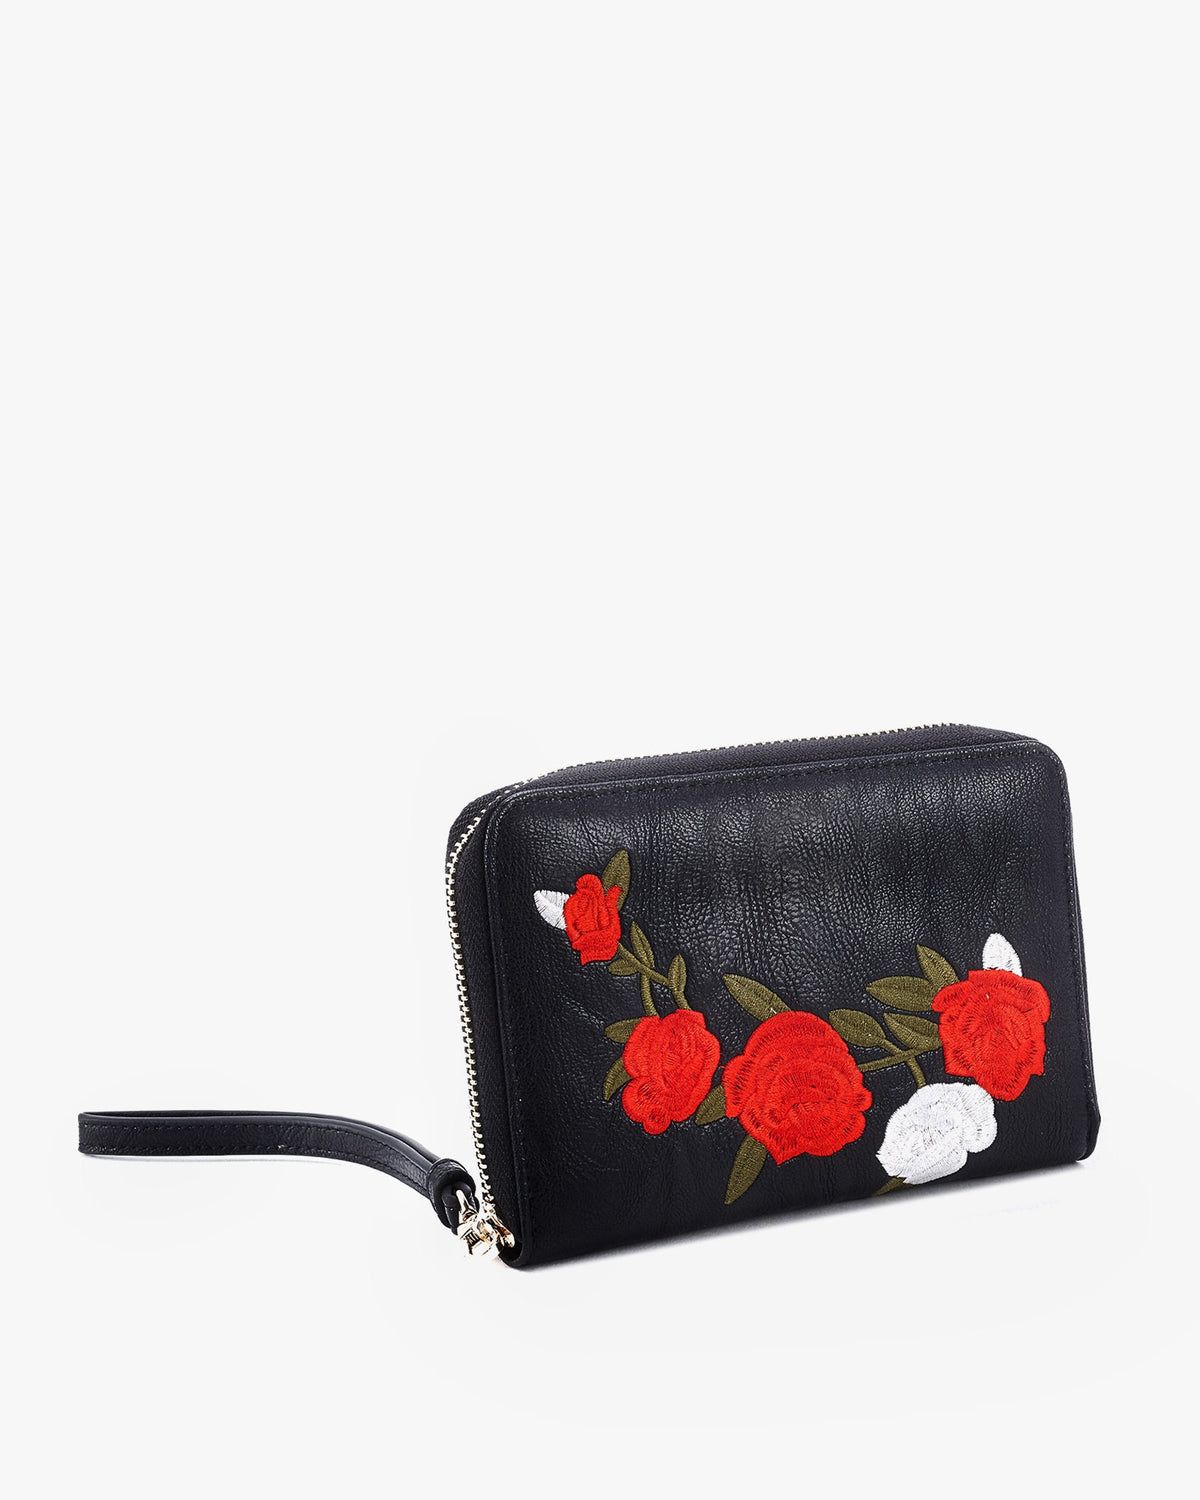 Jami - Vegan Leather Wallet